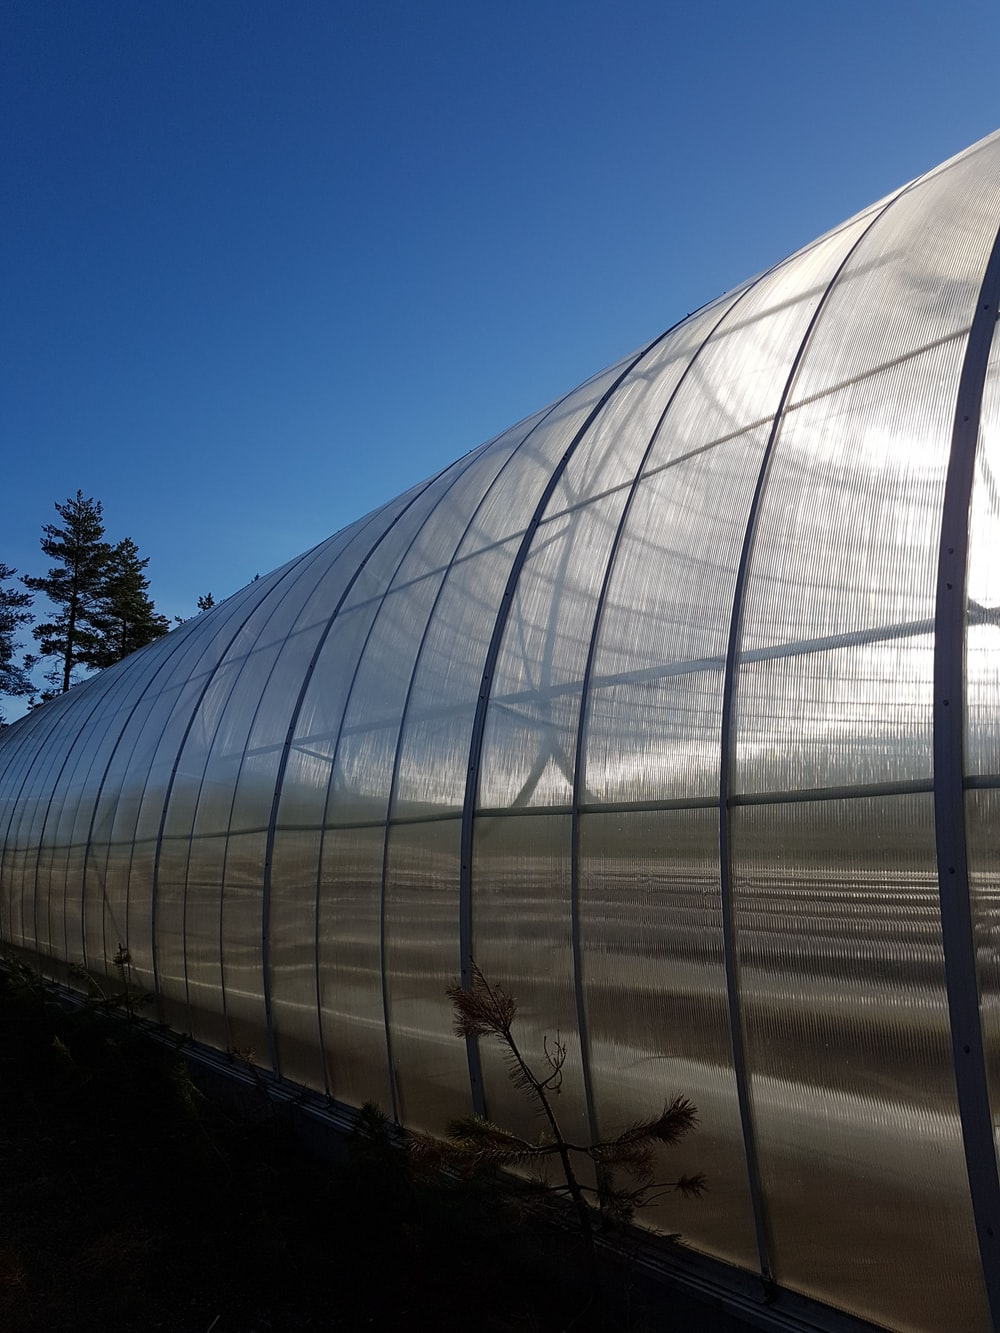 greenhouse under clear blue sky